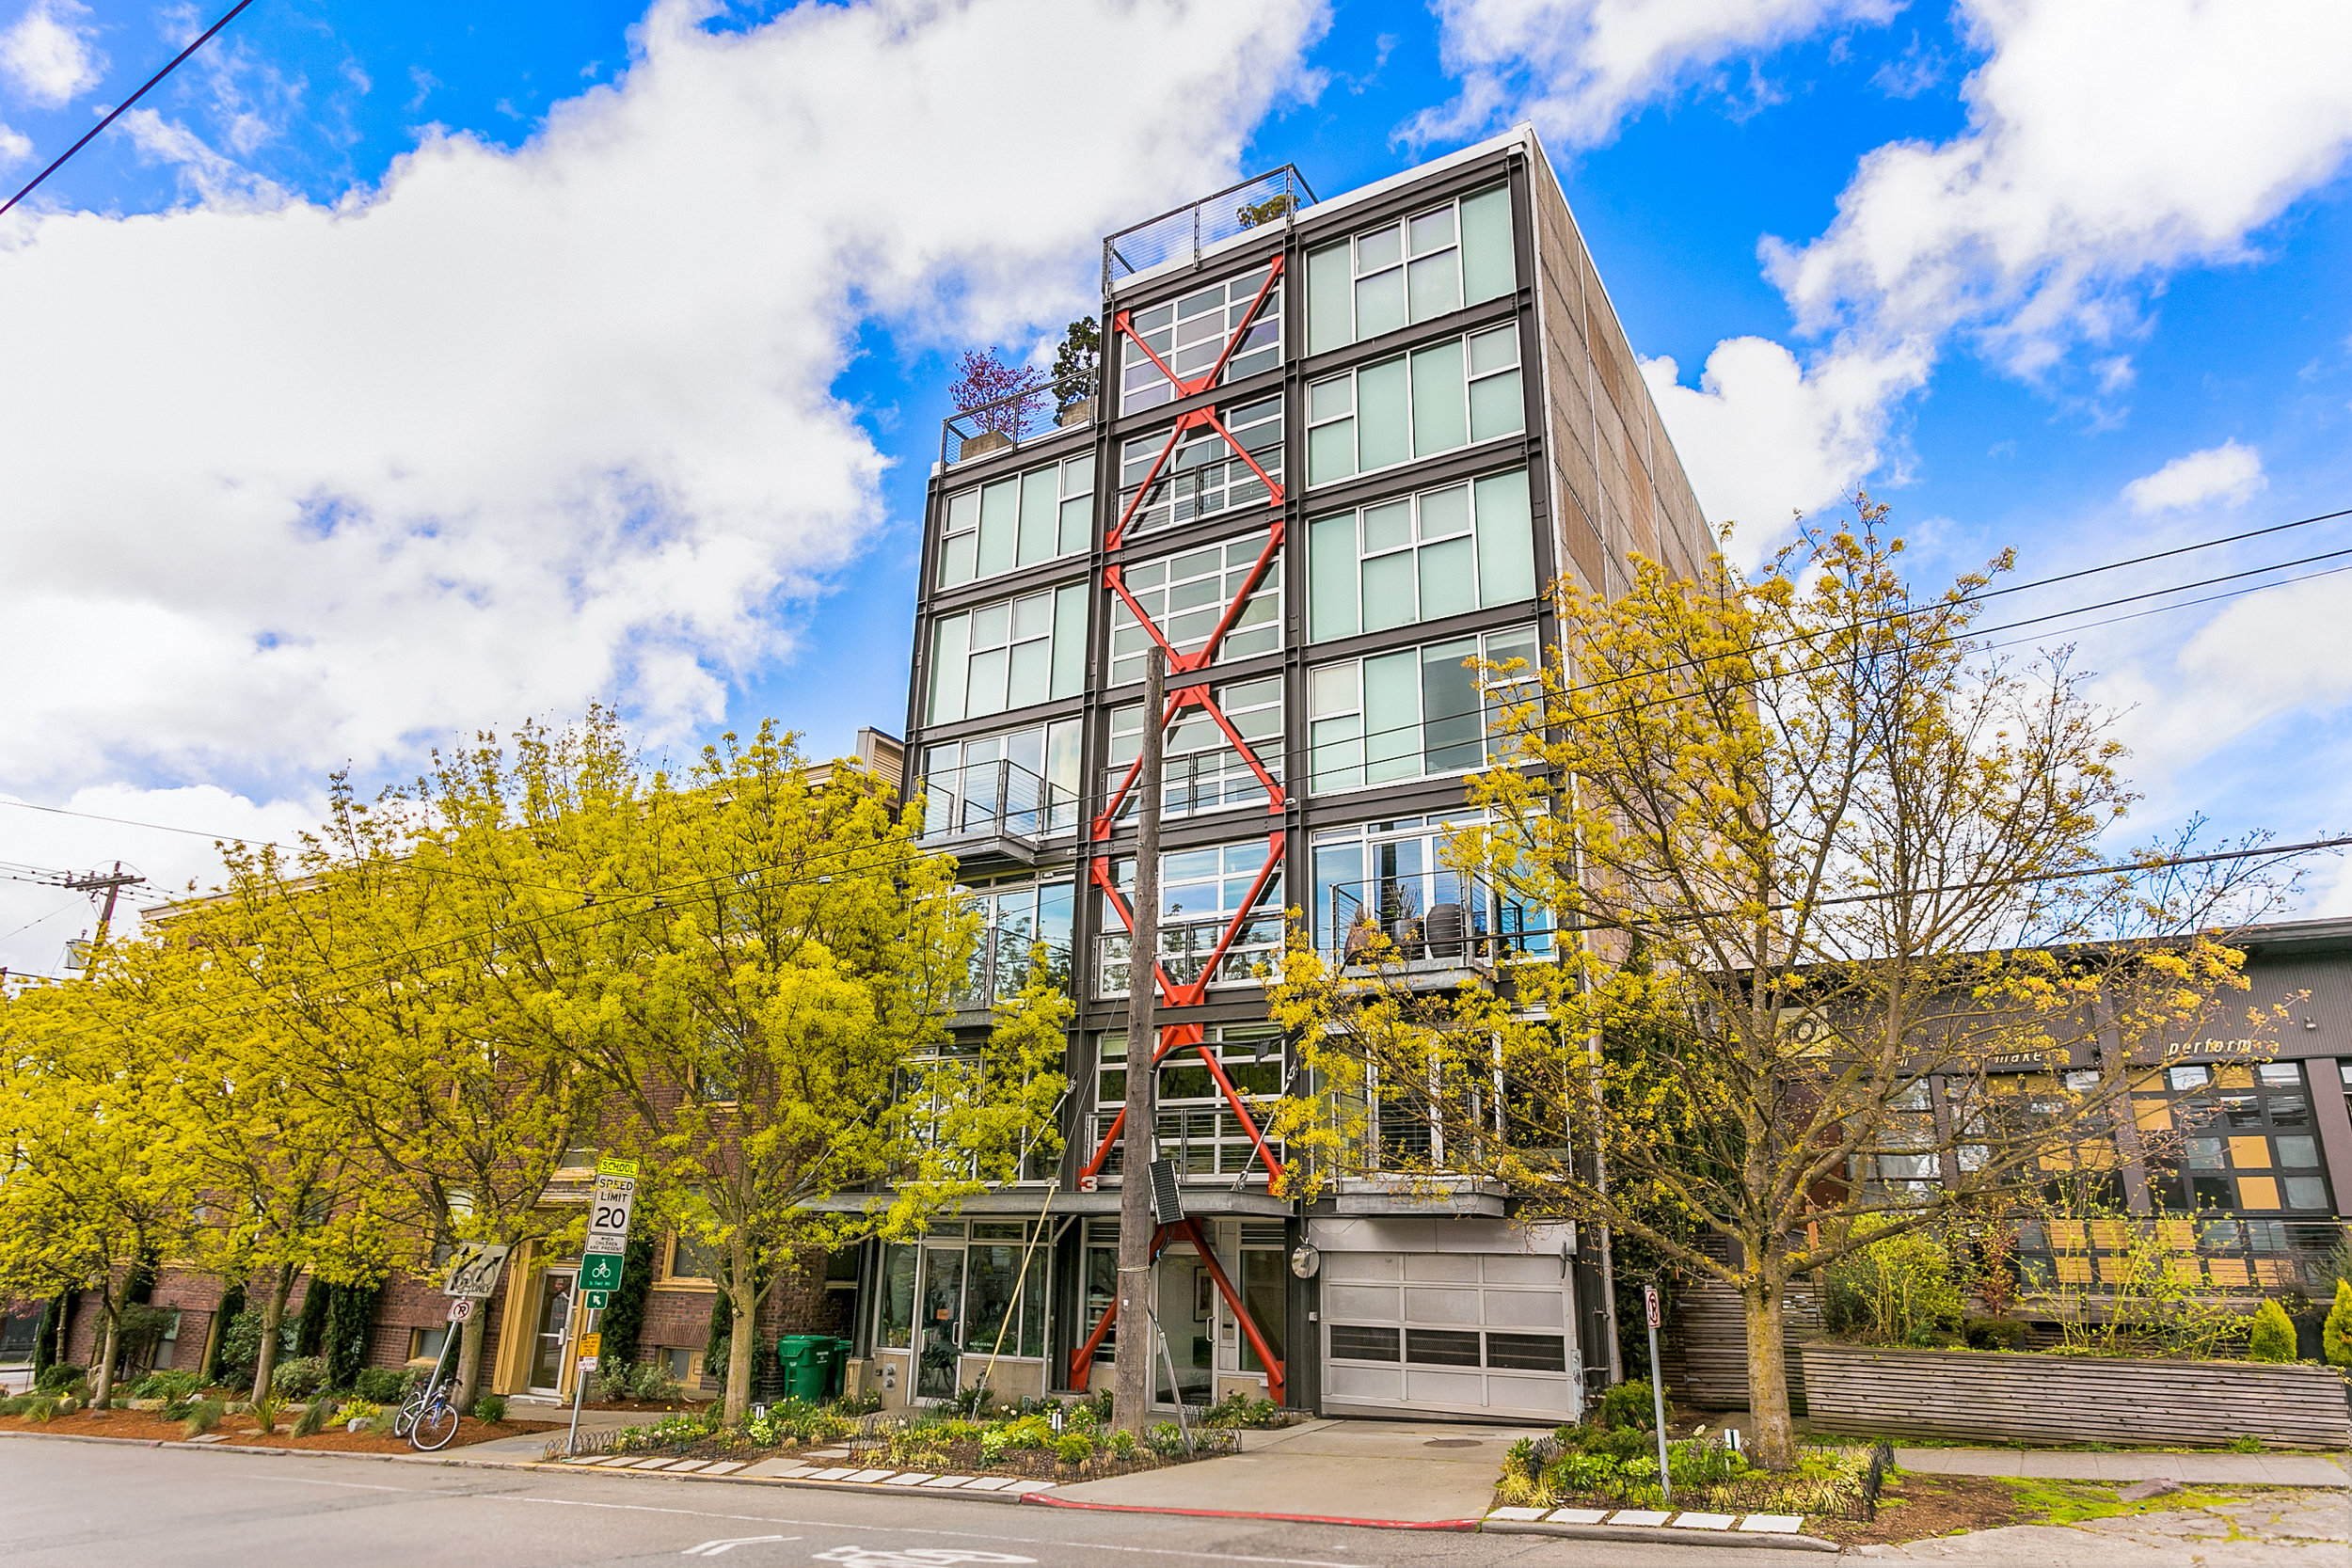 4040 26th Avenue SW | Offered at $1,000,000